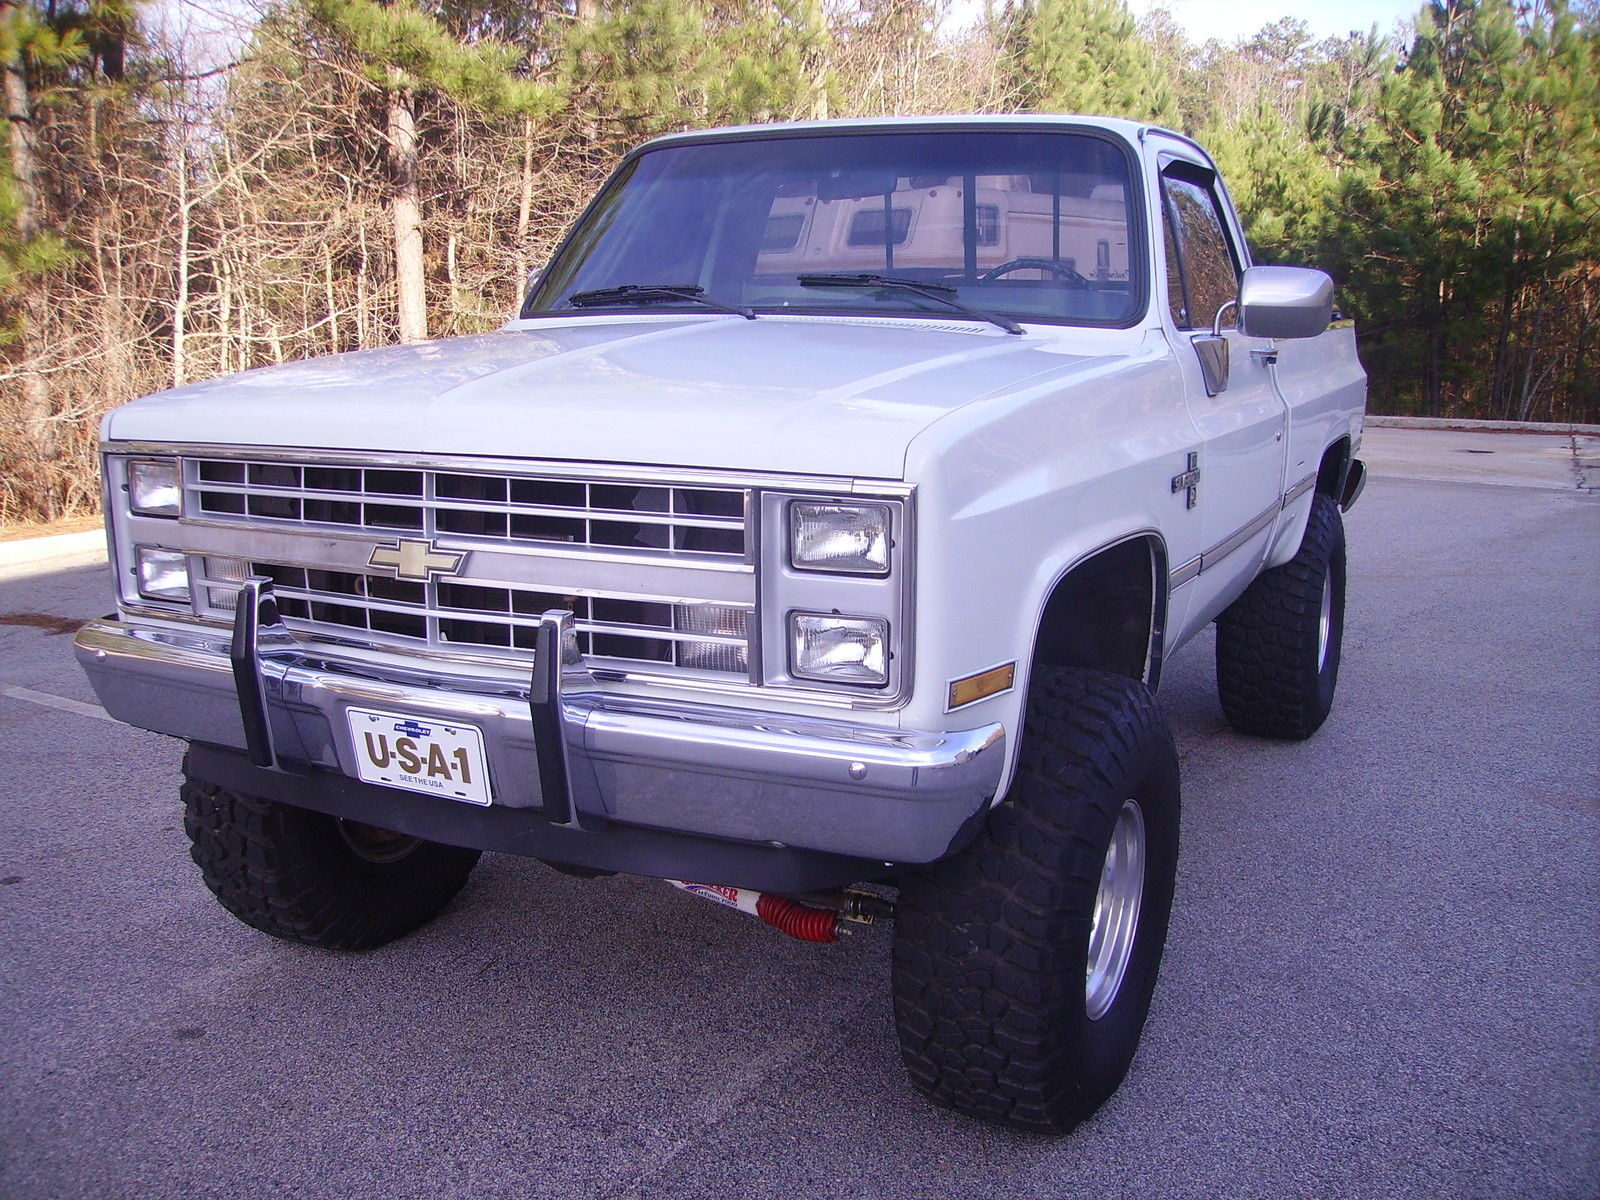 1987 chevy silverado 4x4 swb truck 350 fi engine p s p b a c heat new tires nice for sale in. Black Bedroom Furniture Sets. Home Design Ideas